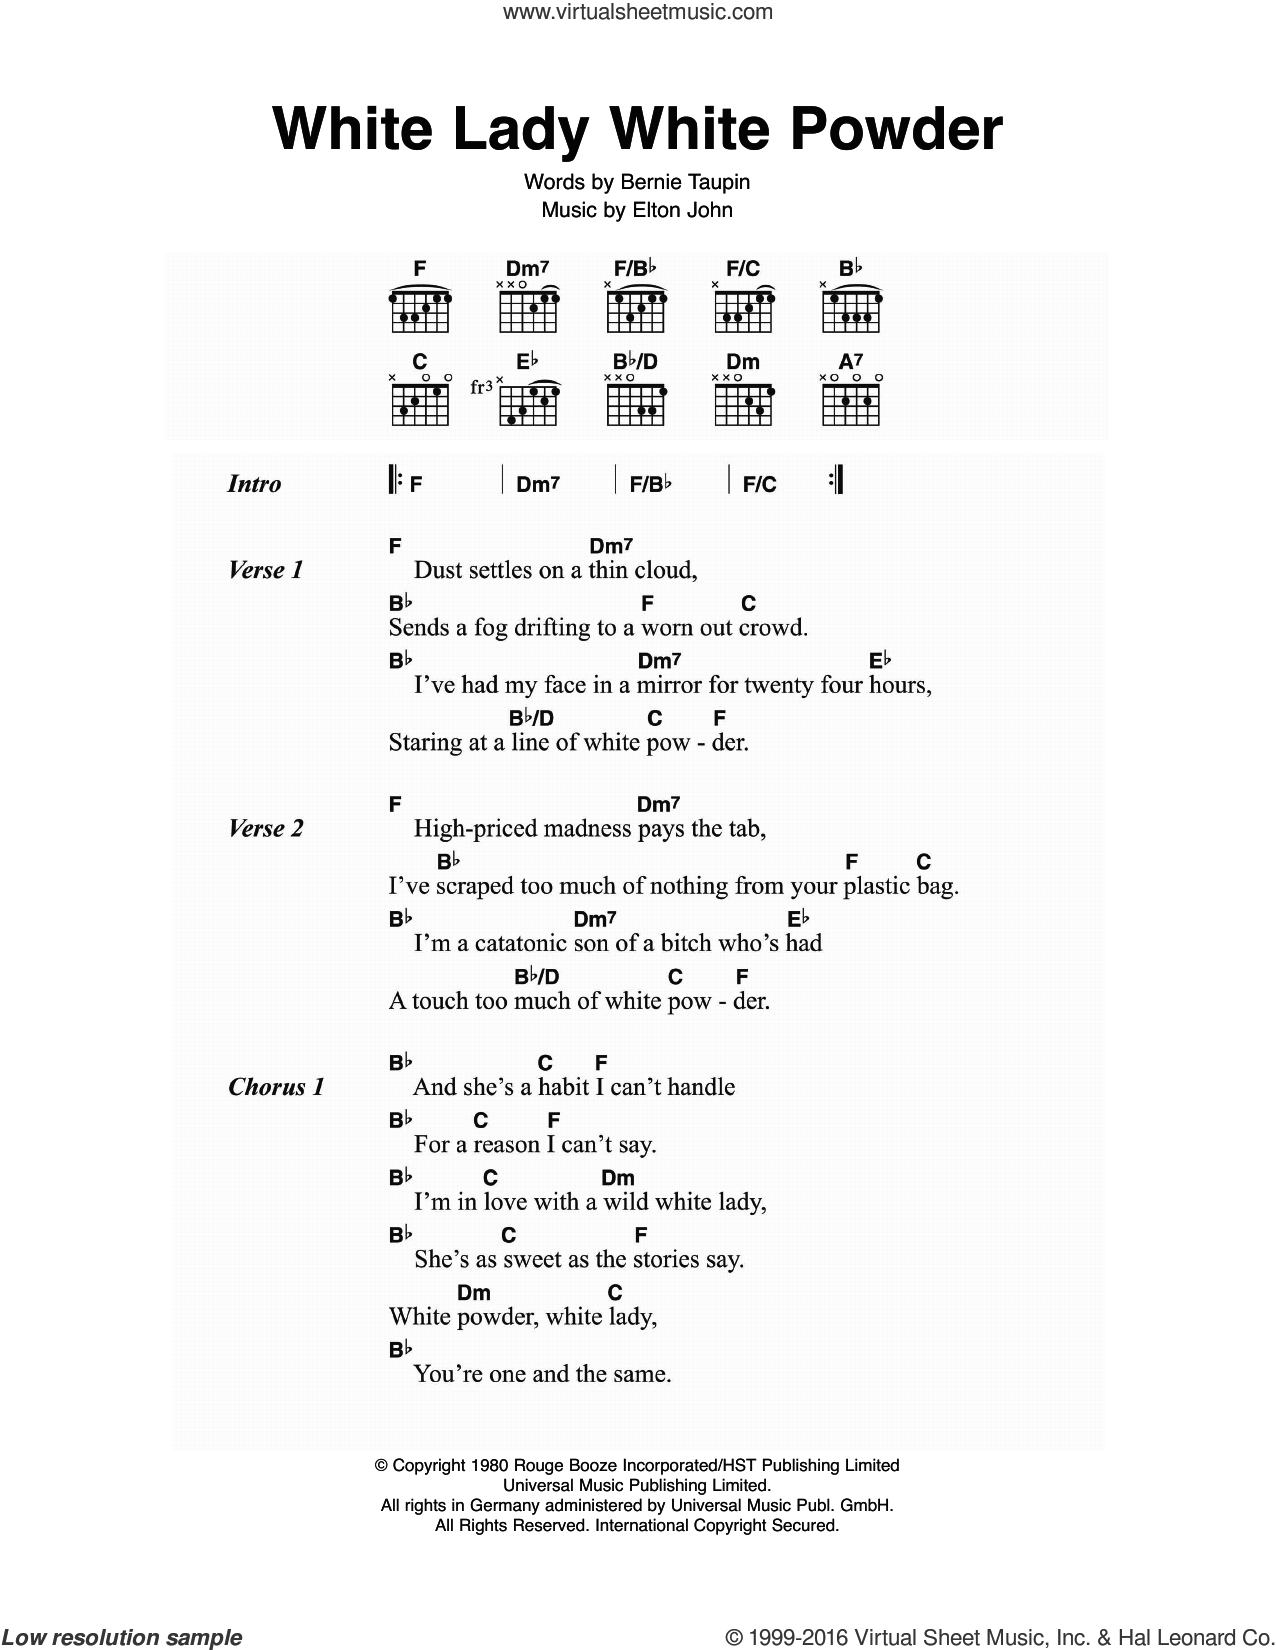 White Lady White Powder sheet music for guitar (chords) by Elton John and Bernie Taupin, intermediate skill level